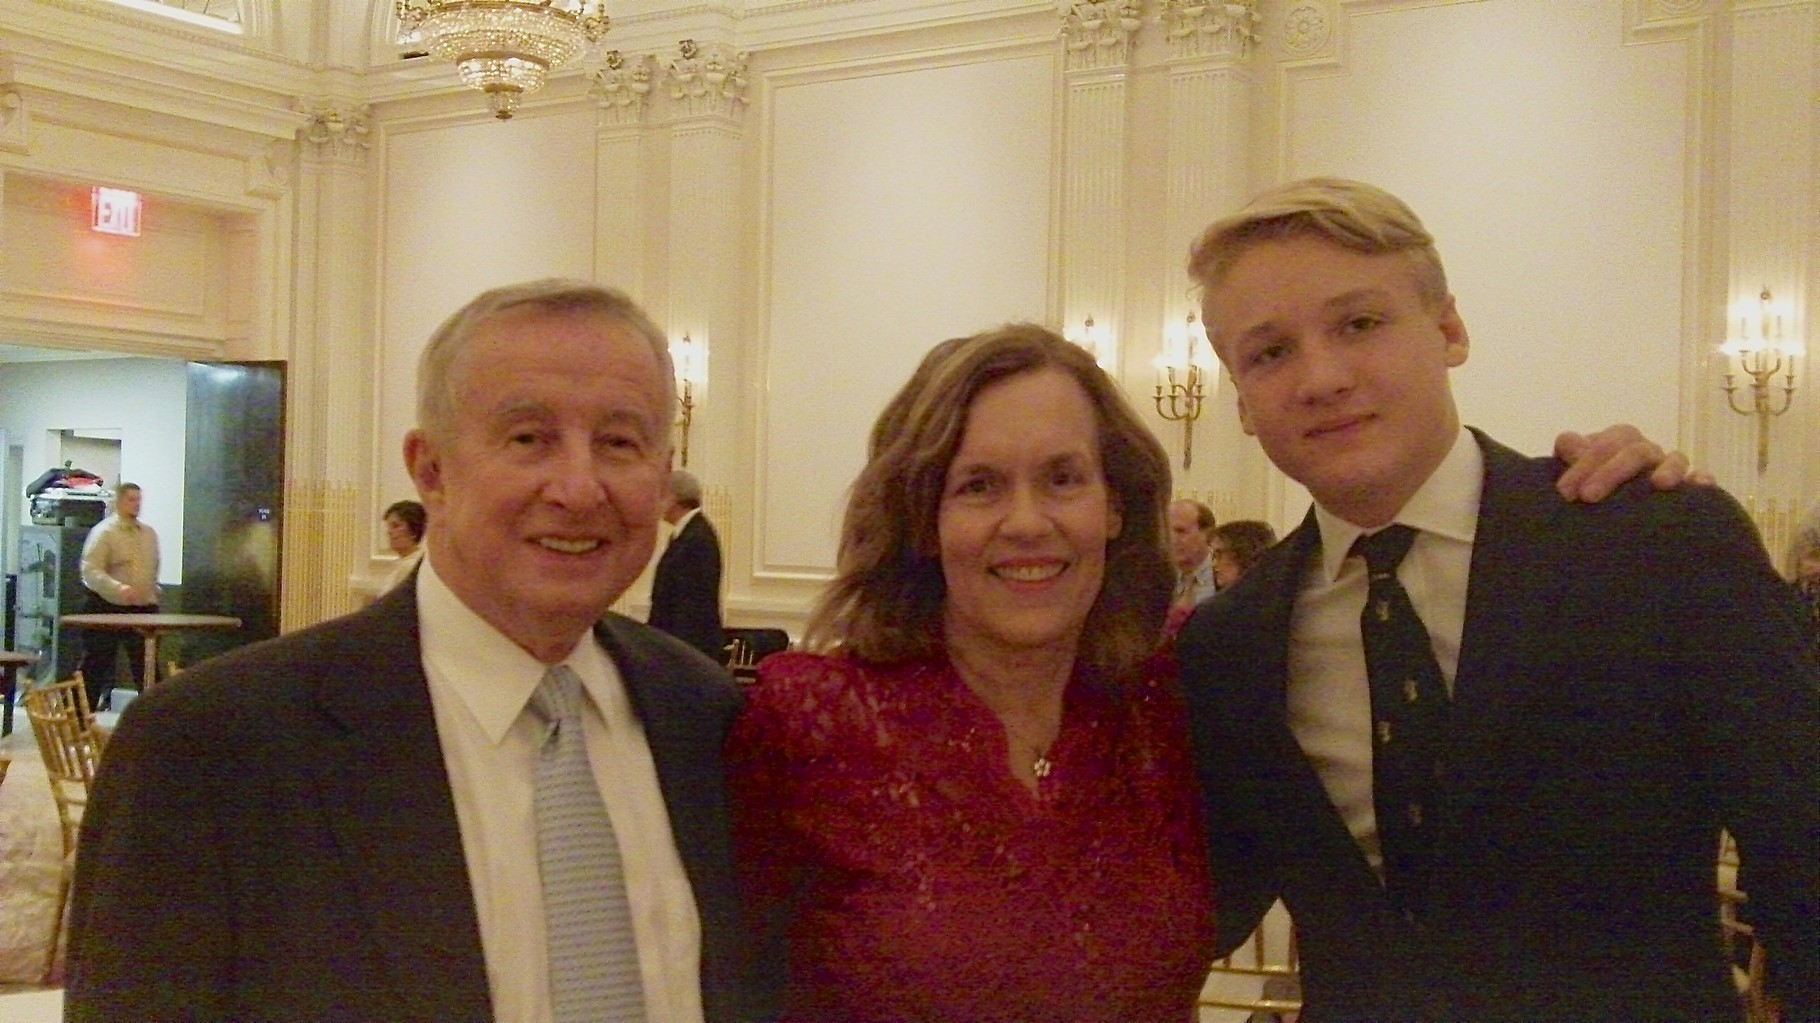 Dr. Gotto, Lorraine Gudas, & Nicholas at the party, Oct. 23, 2015